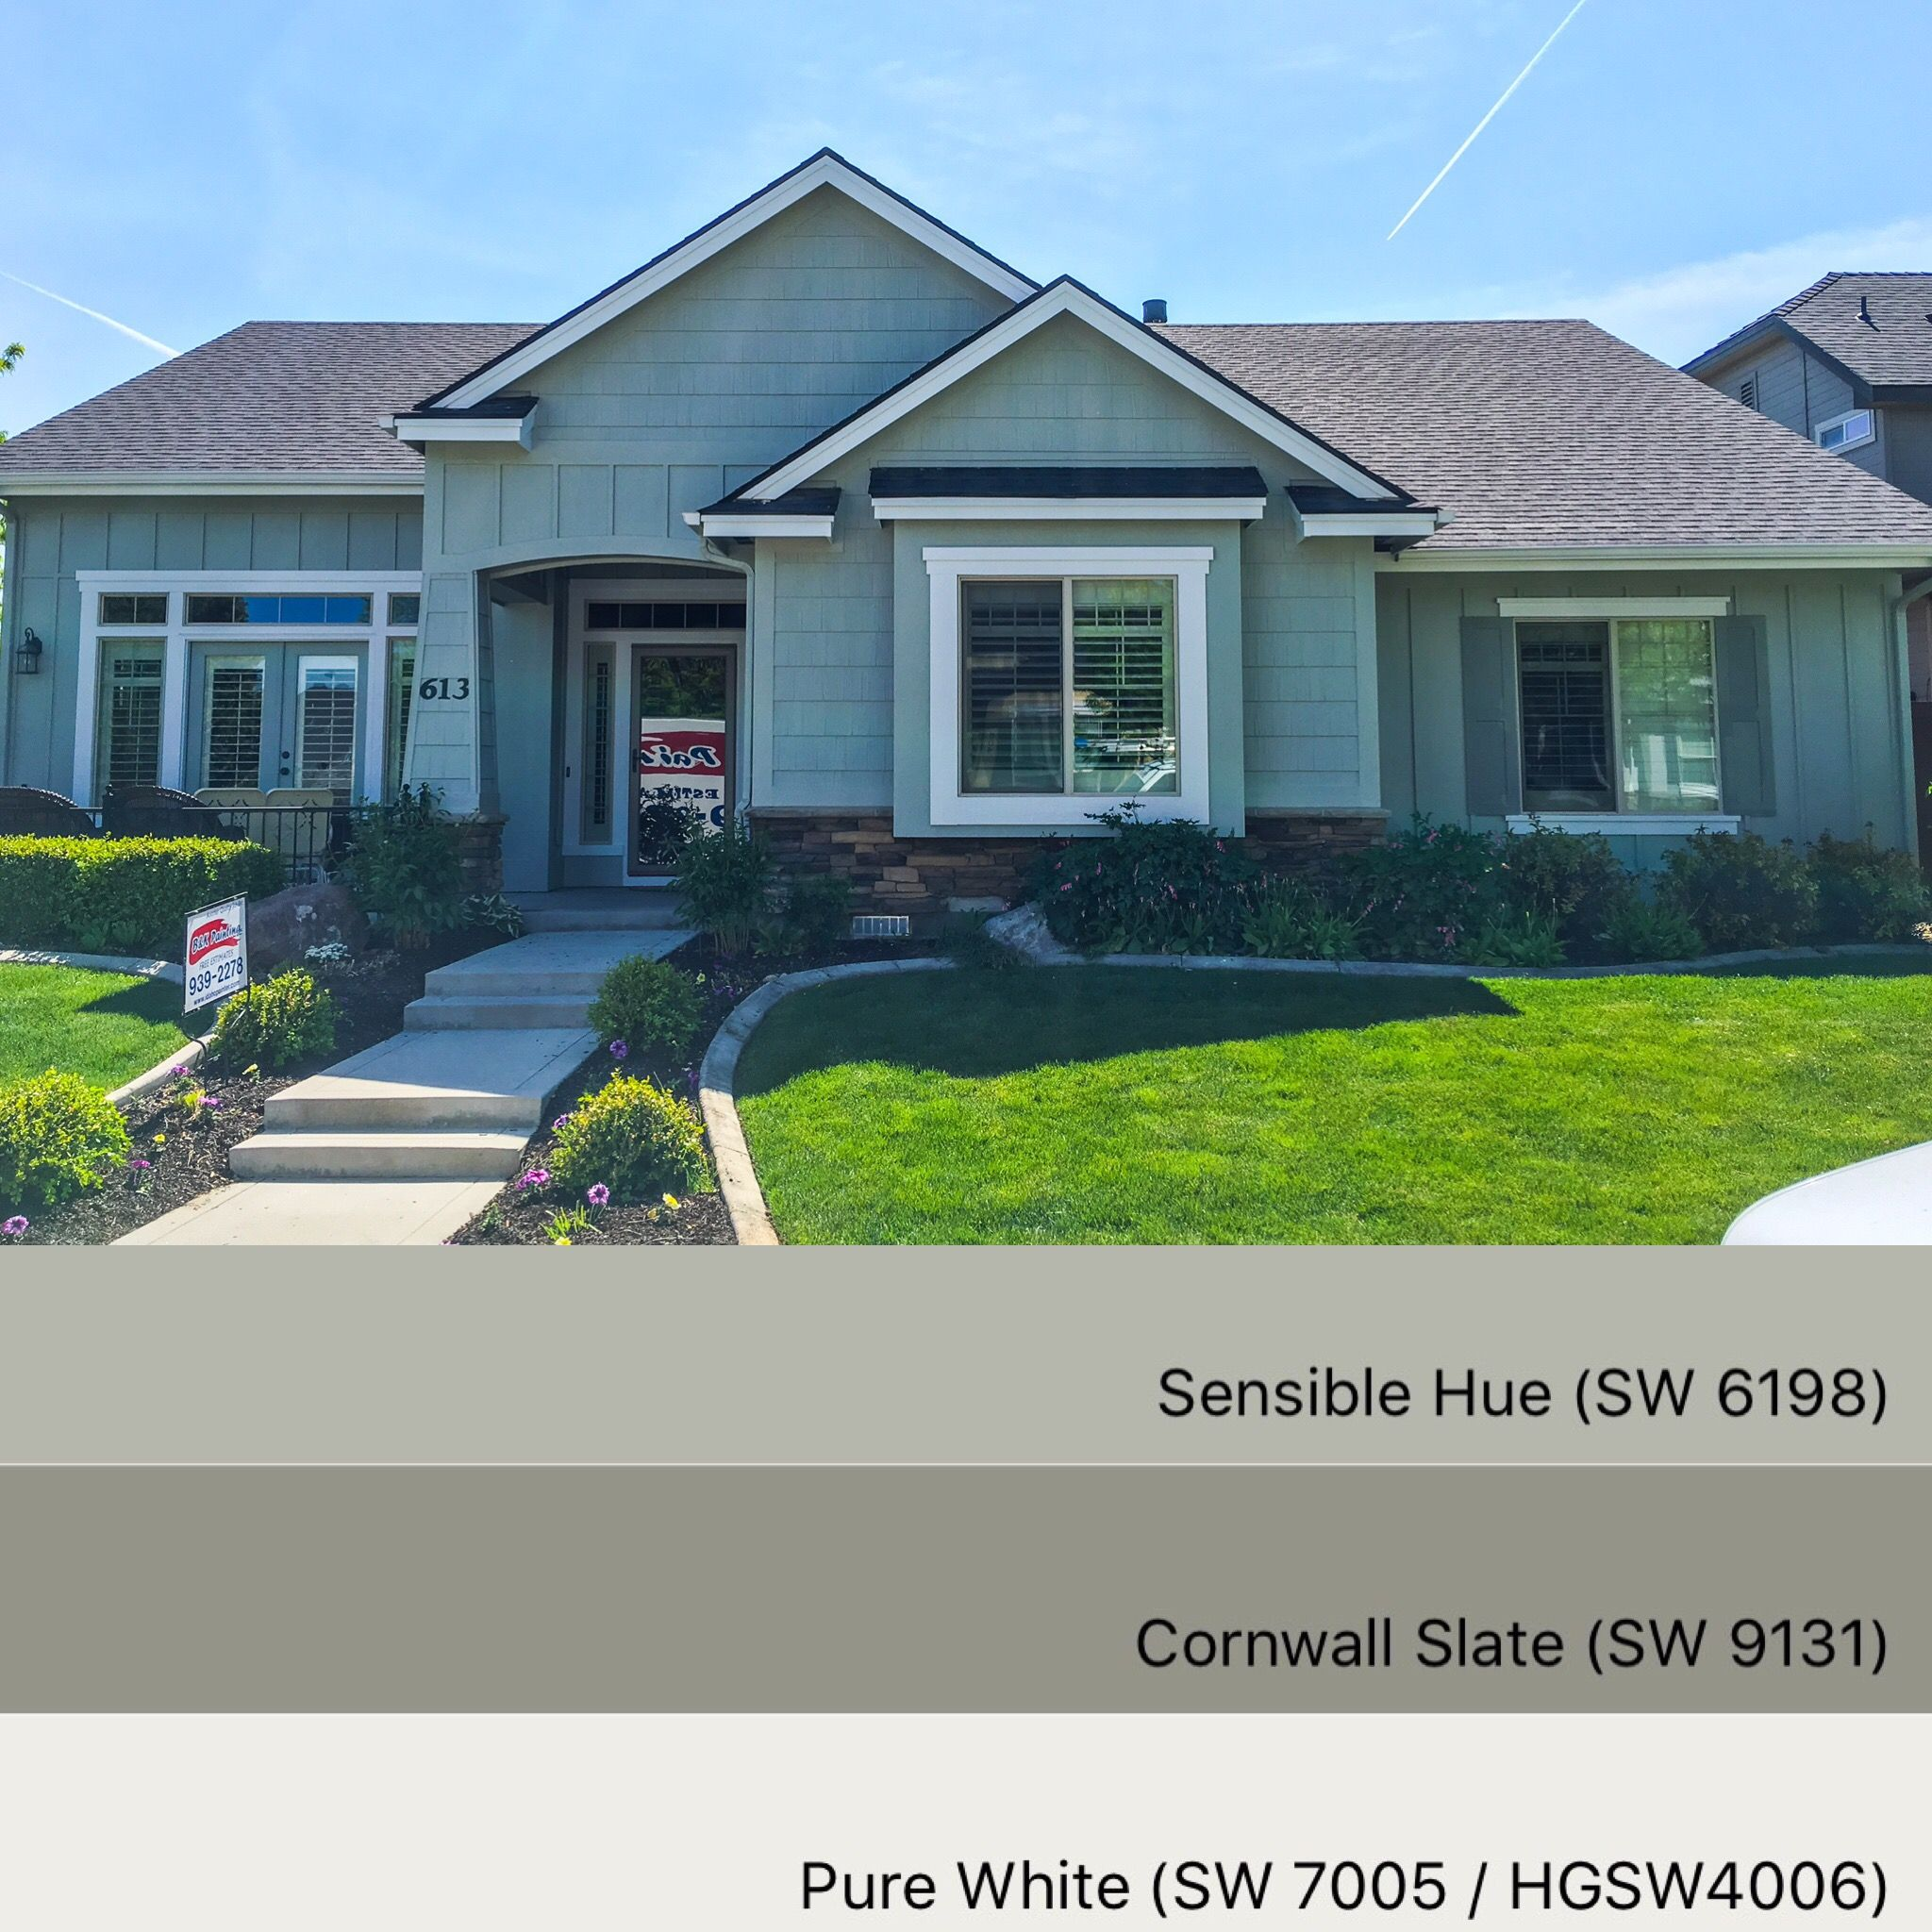 sherwin williams paint colors: sensible hue 6198, cornwall slate